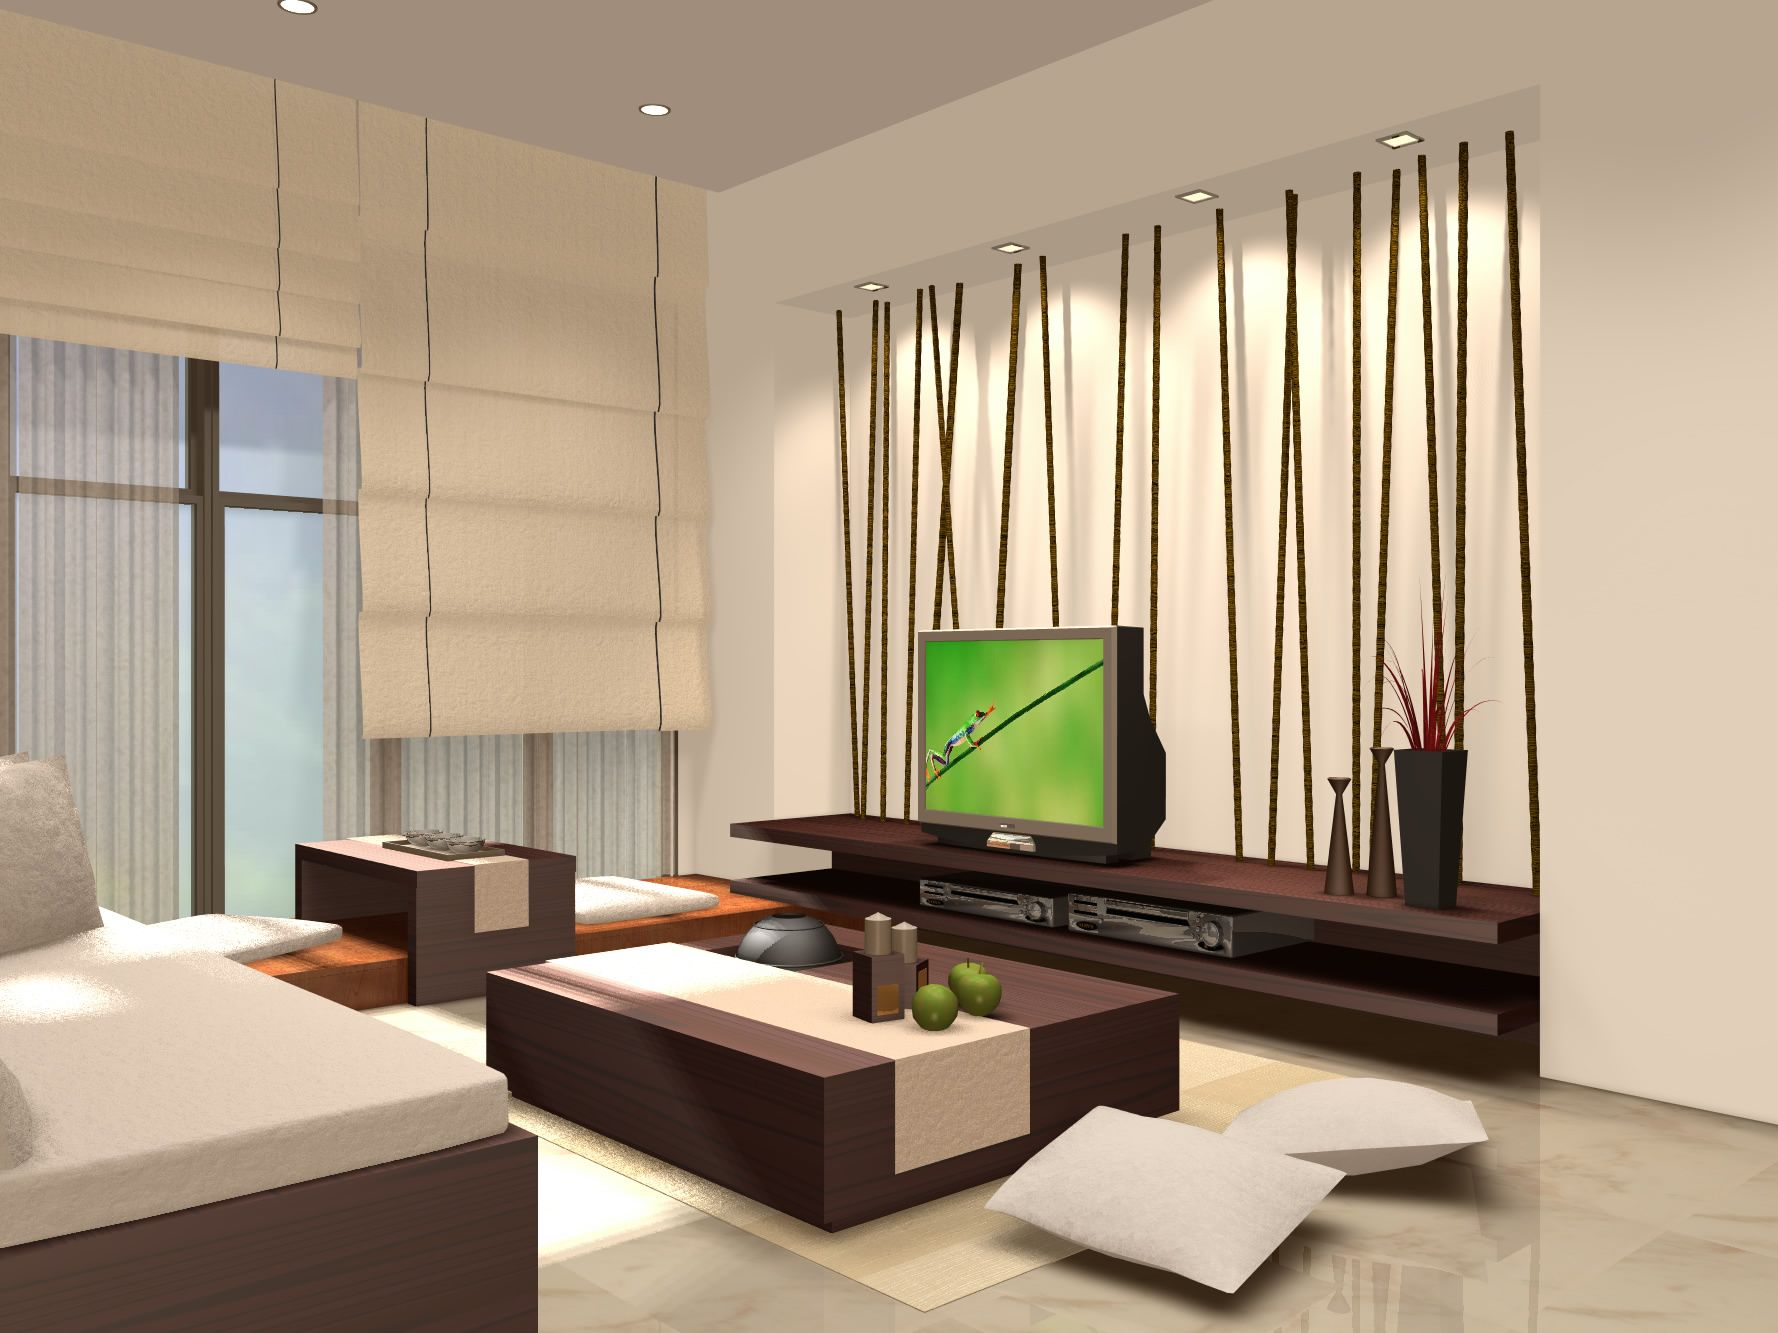 Interior design living room  Zen interior style and zen interior design